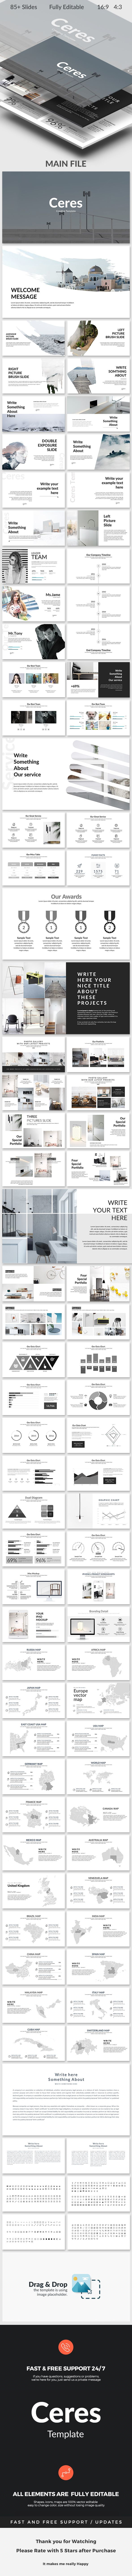 Ceres - Creative Powerpoint Template. Download here: https://graphicriver.net/item/ceres-creative-powerpoint-template/17695231?ref=ksioks